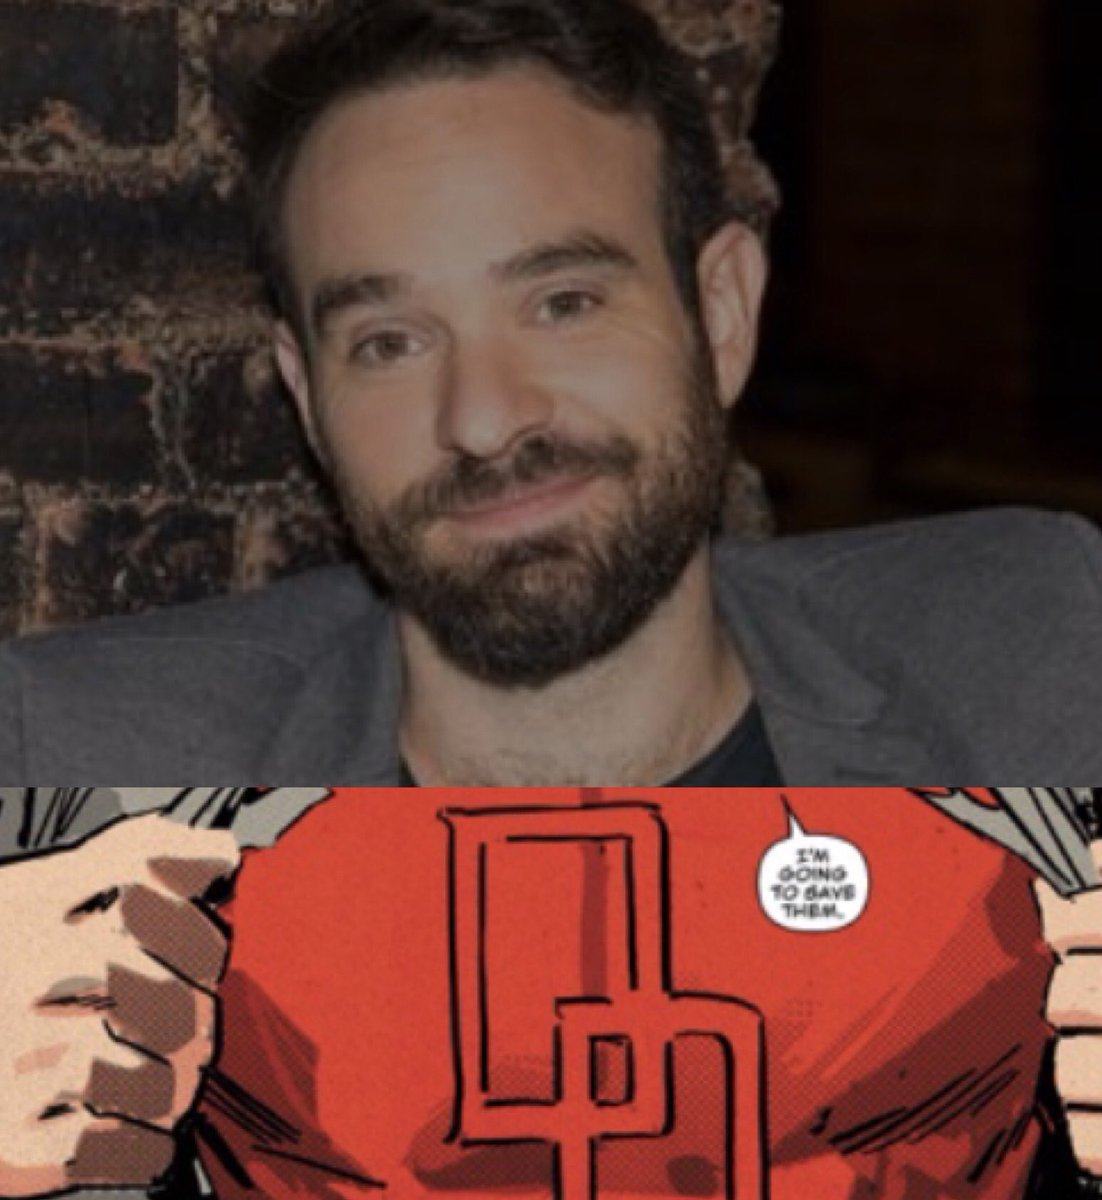 RT to AGREE, Charlie Cox is Daredevil and we want him back! #SaveDaredevil  🥊😈❤️